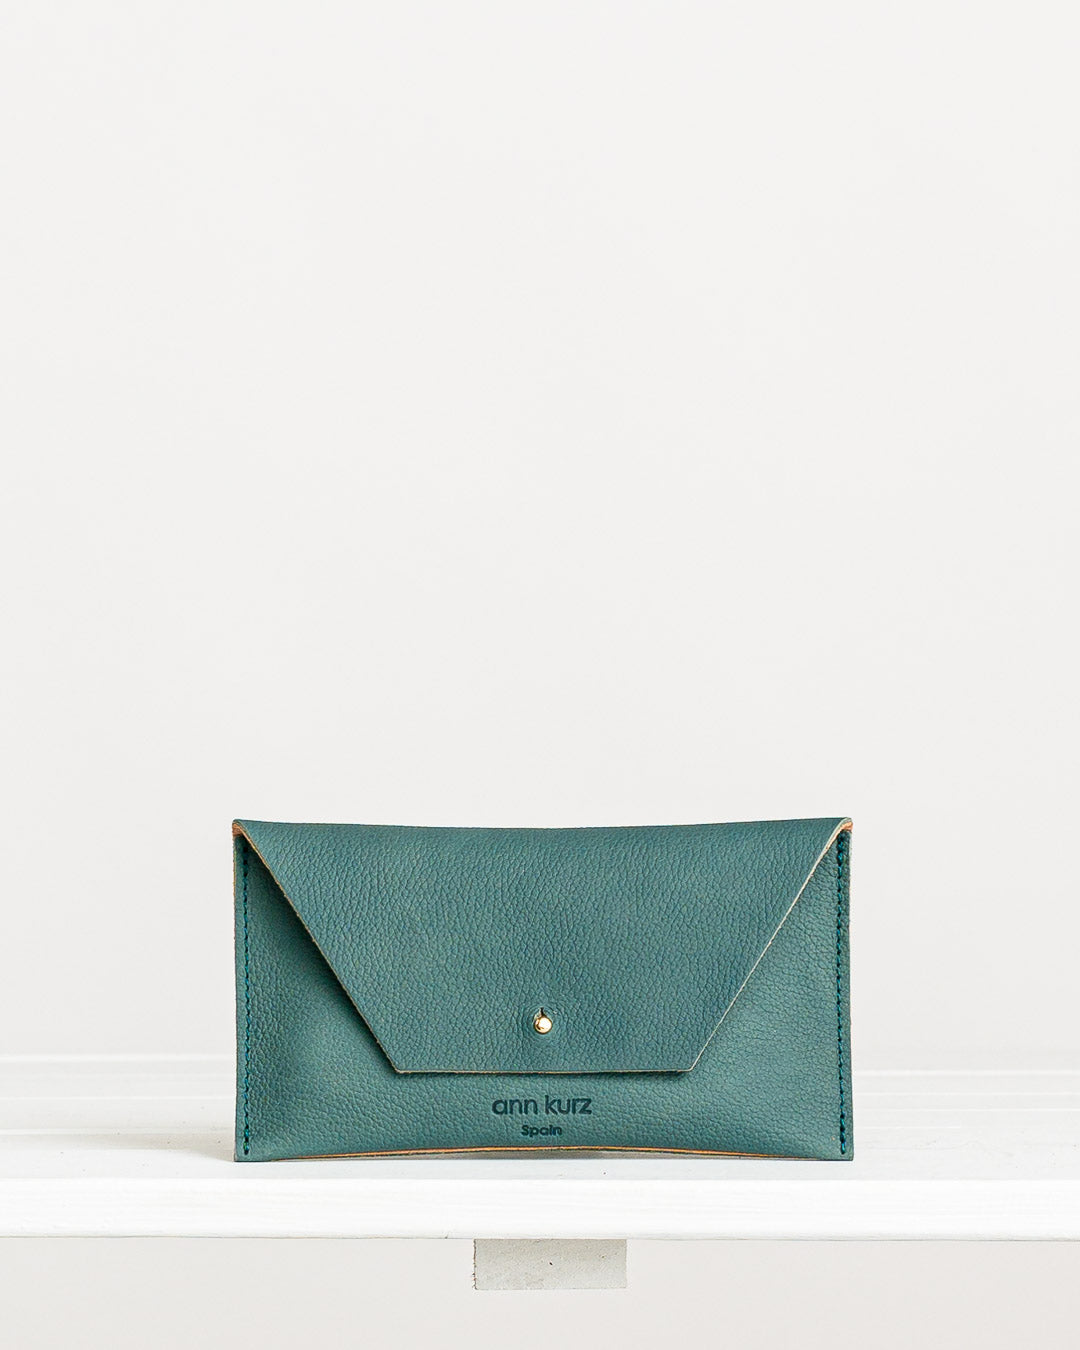 Ann Kurz // Purse Mini Mia Western Dark Mint